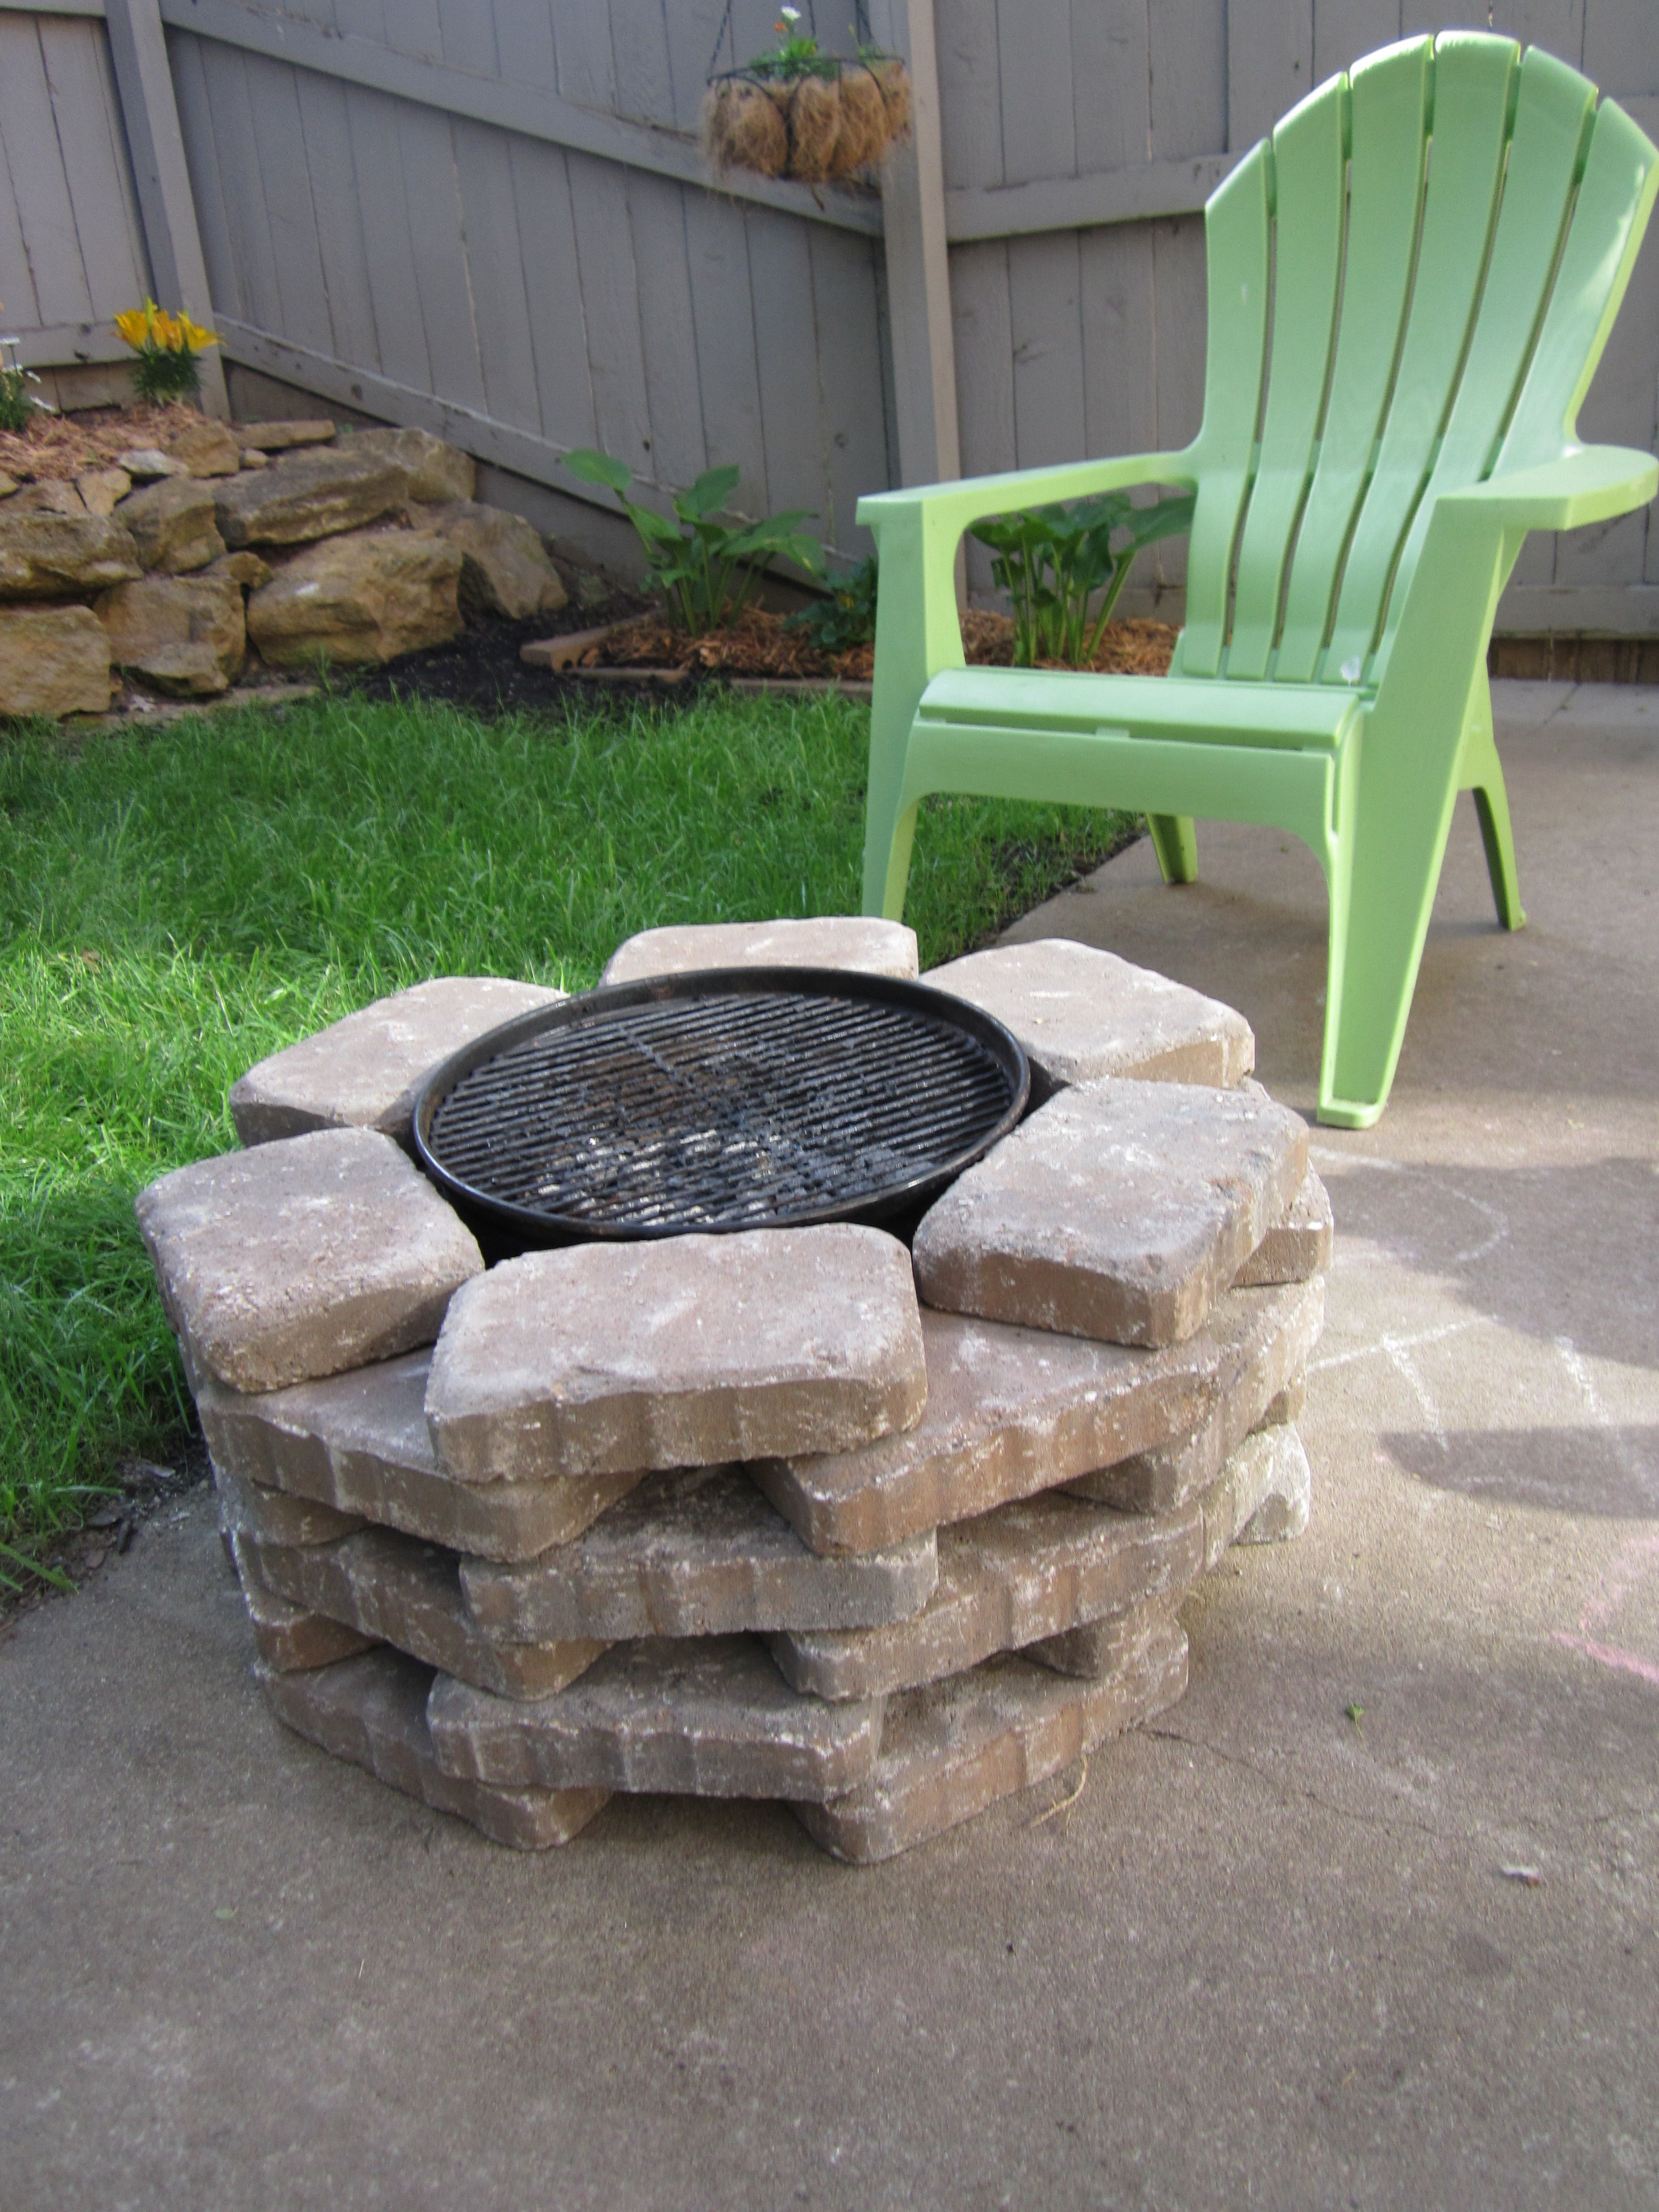 diy fire pit with the grill cover off so excited to enjoy our